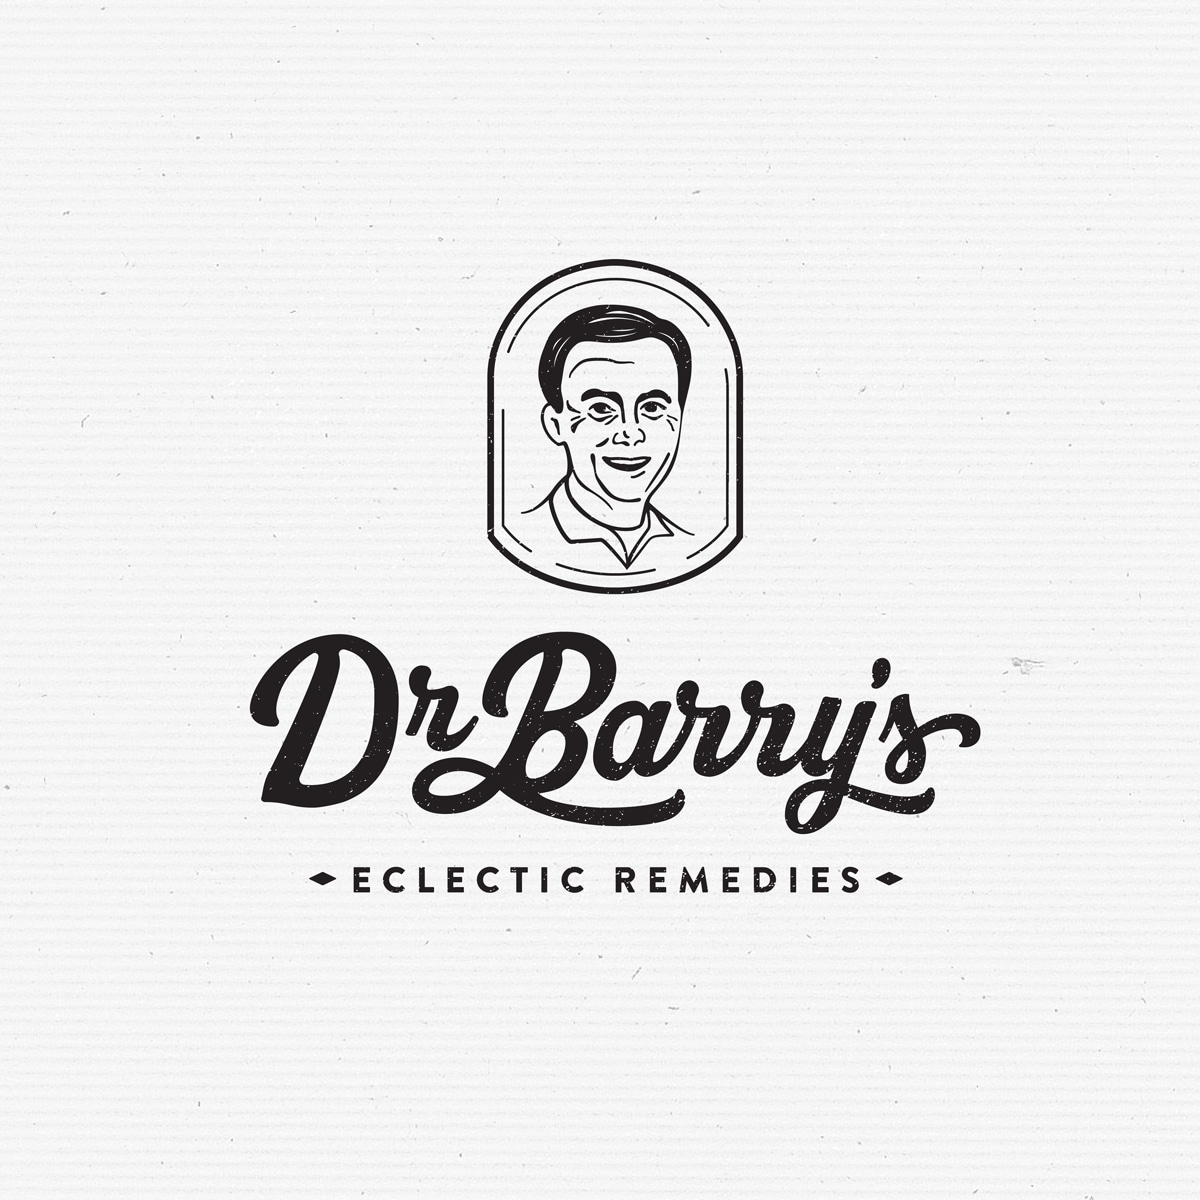 Dr Barry's